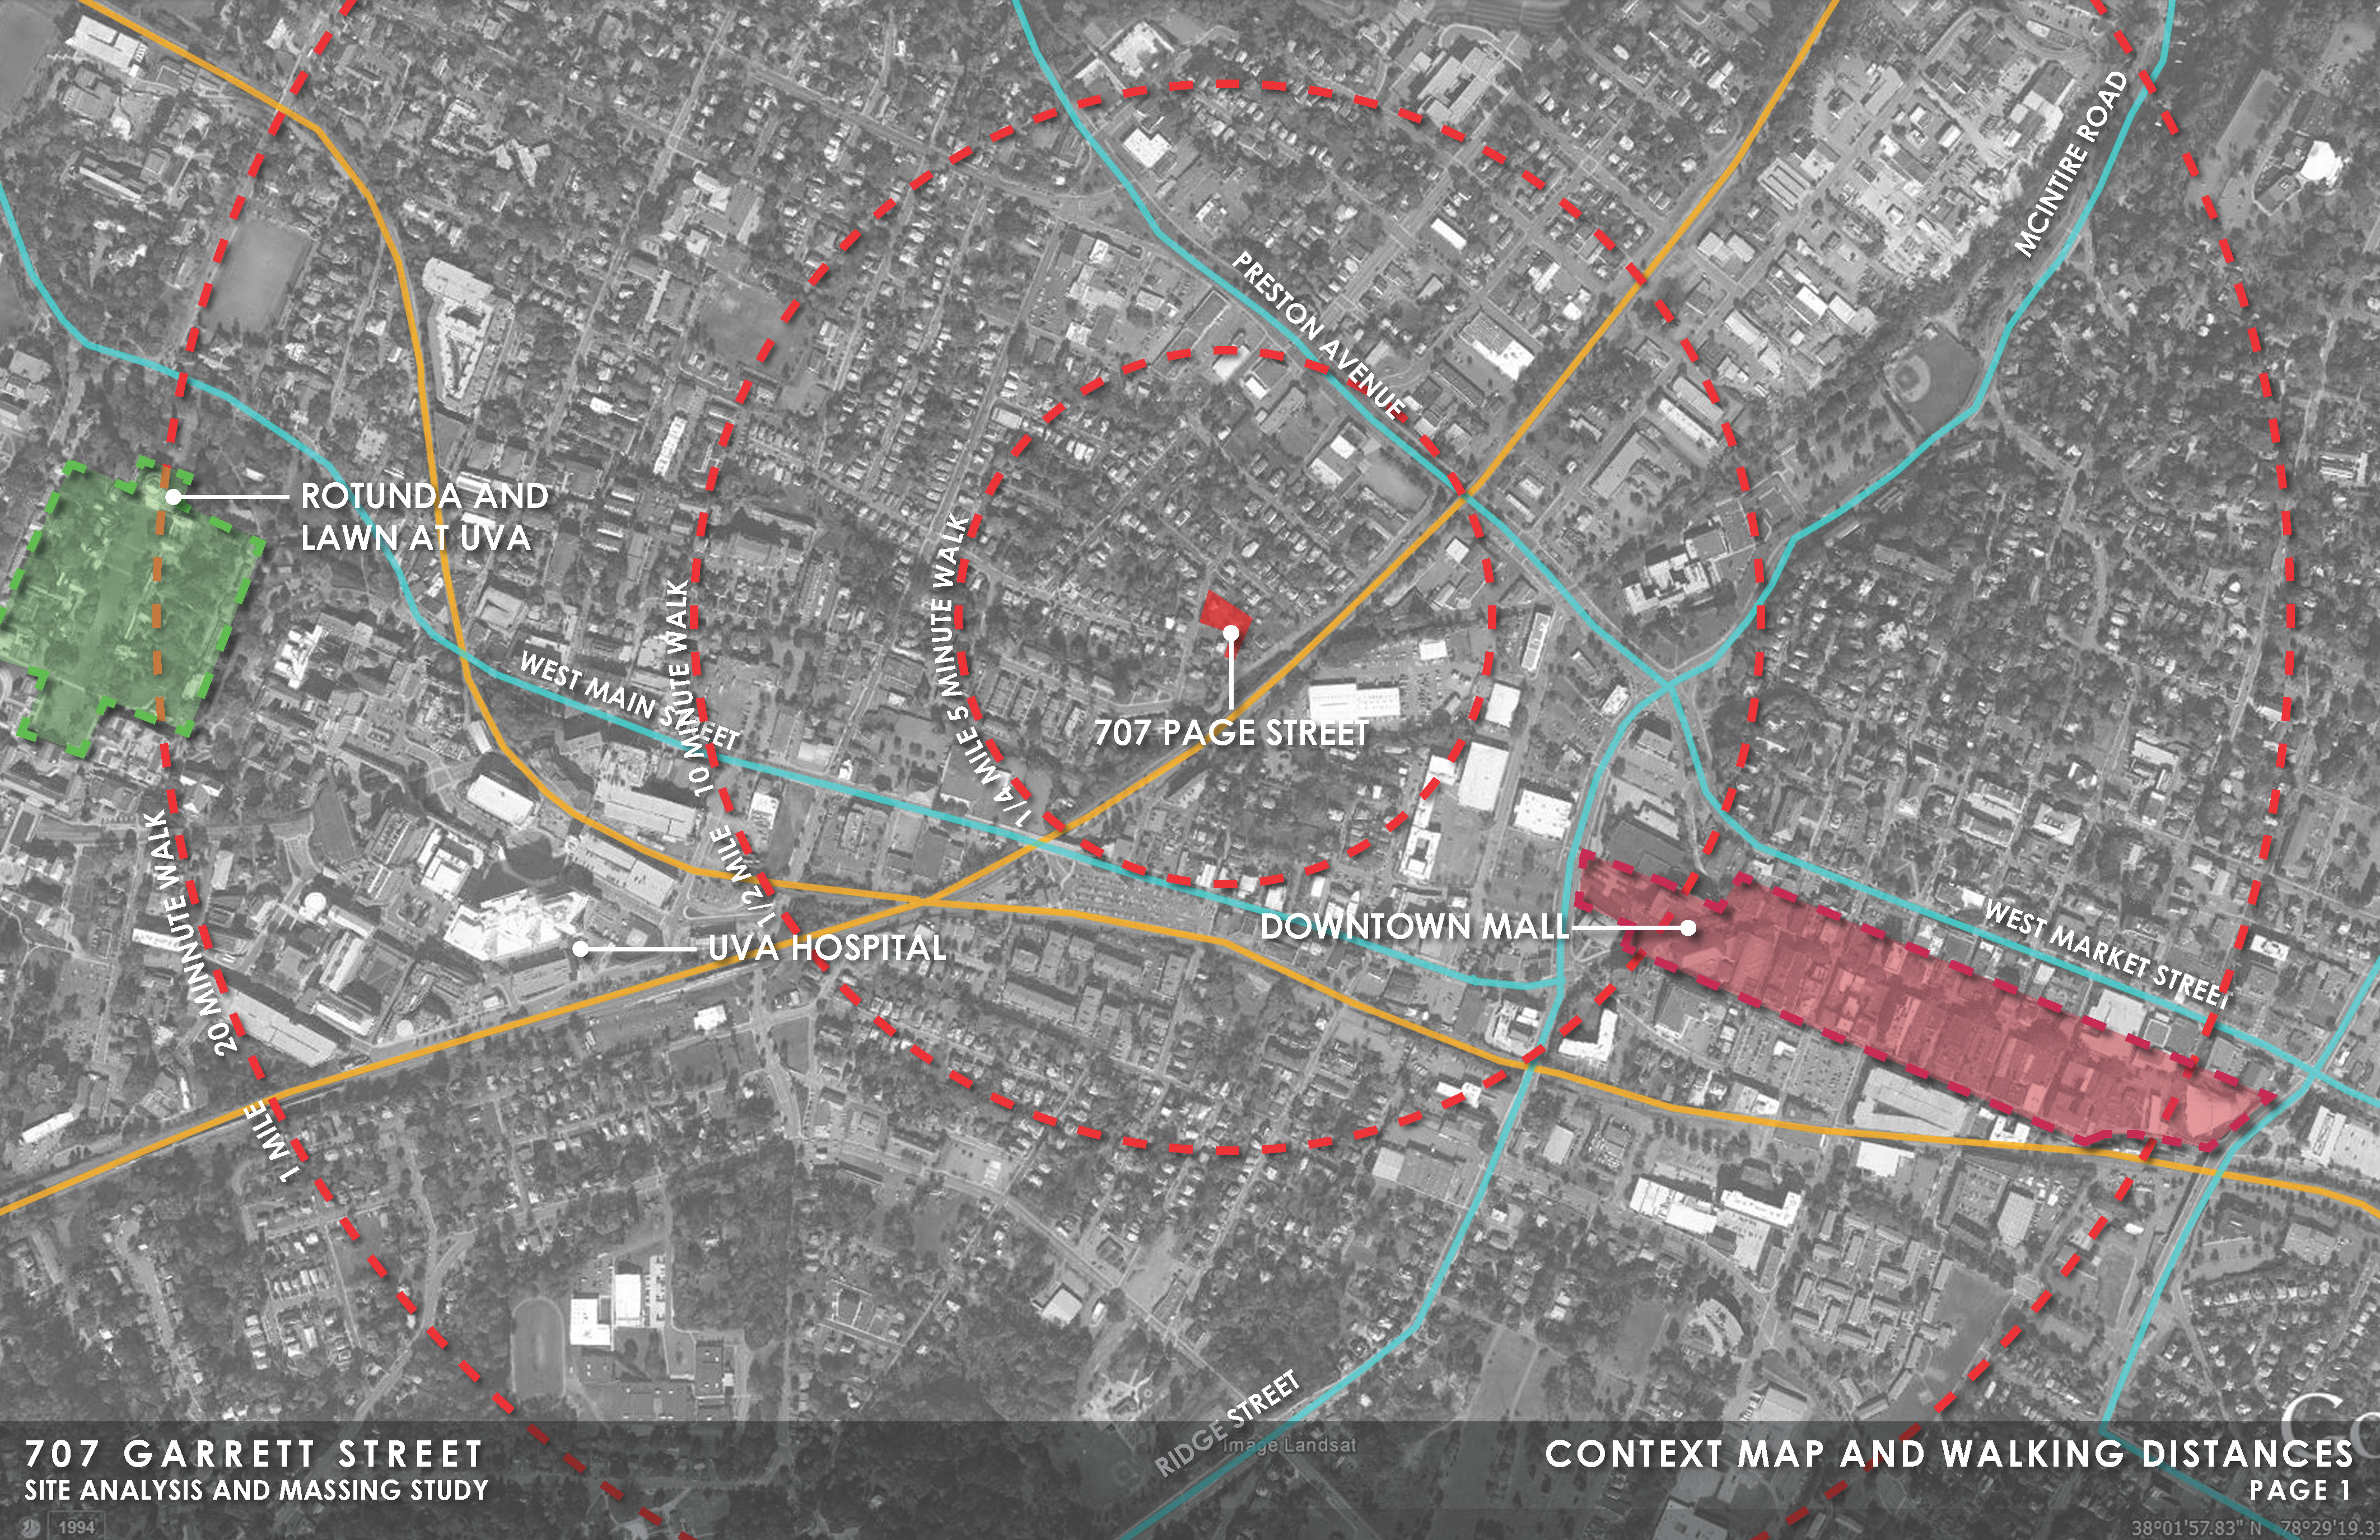 Context Map and Walking Distances